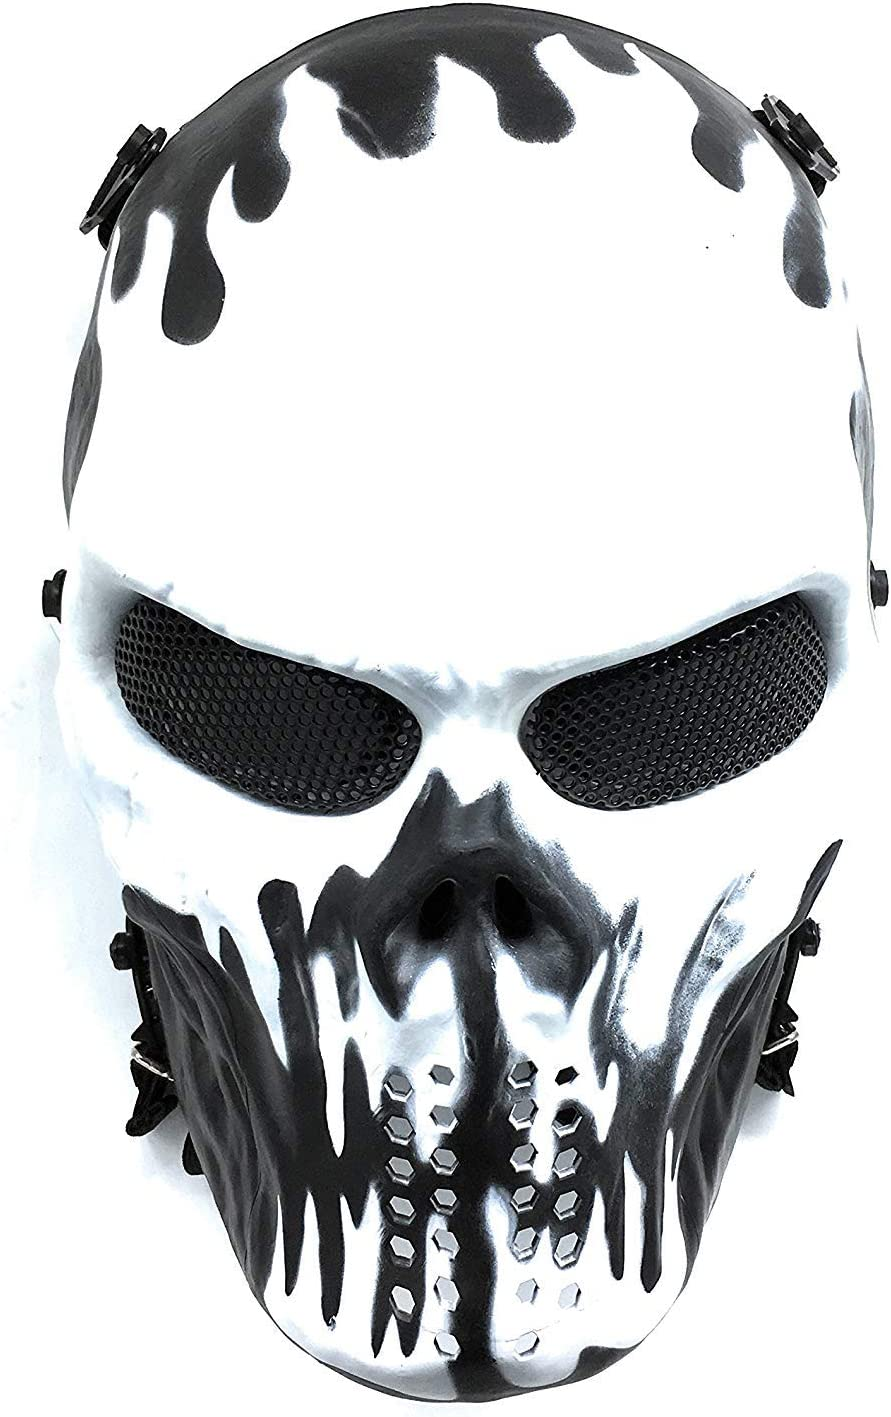 CS mascarilla de protección Halloween Airsoft Paintball Full Face Skull Máscara de esqueleto (Blanco/Negro)